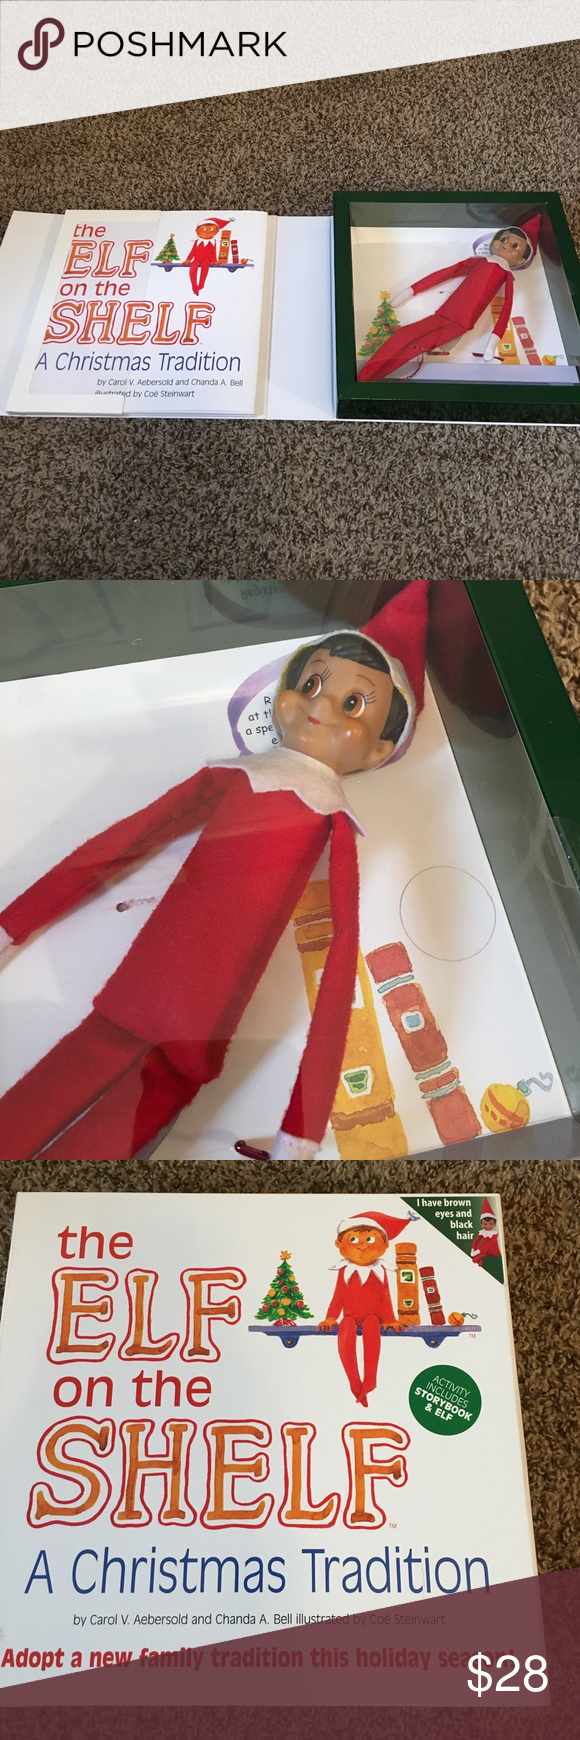 Elf on the Shelf Used 1 year Other